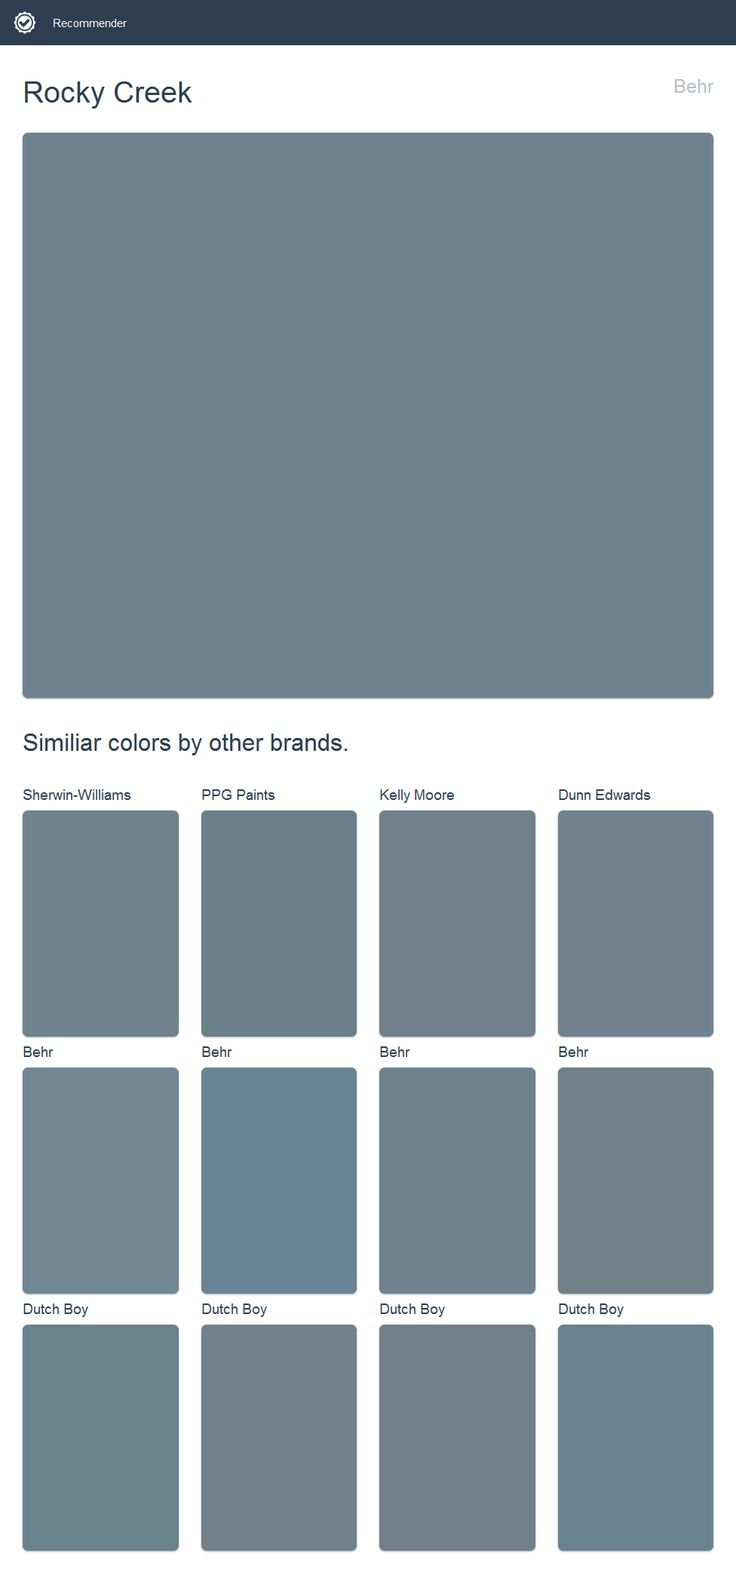 Rocky creek behr click the image to see similiar colors Behr color of the year 2017